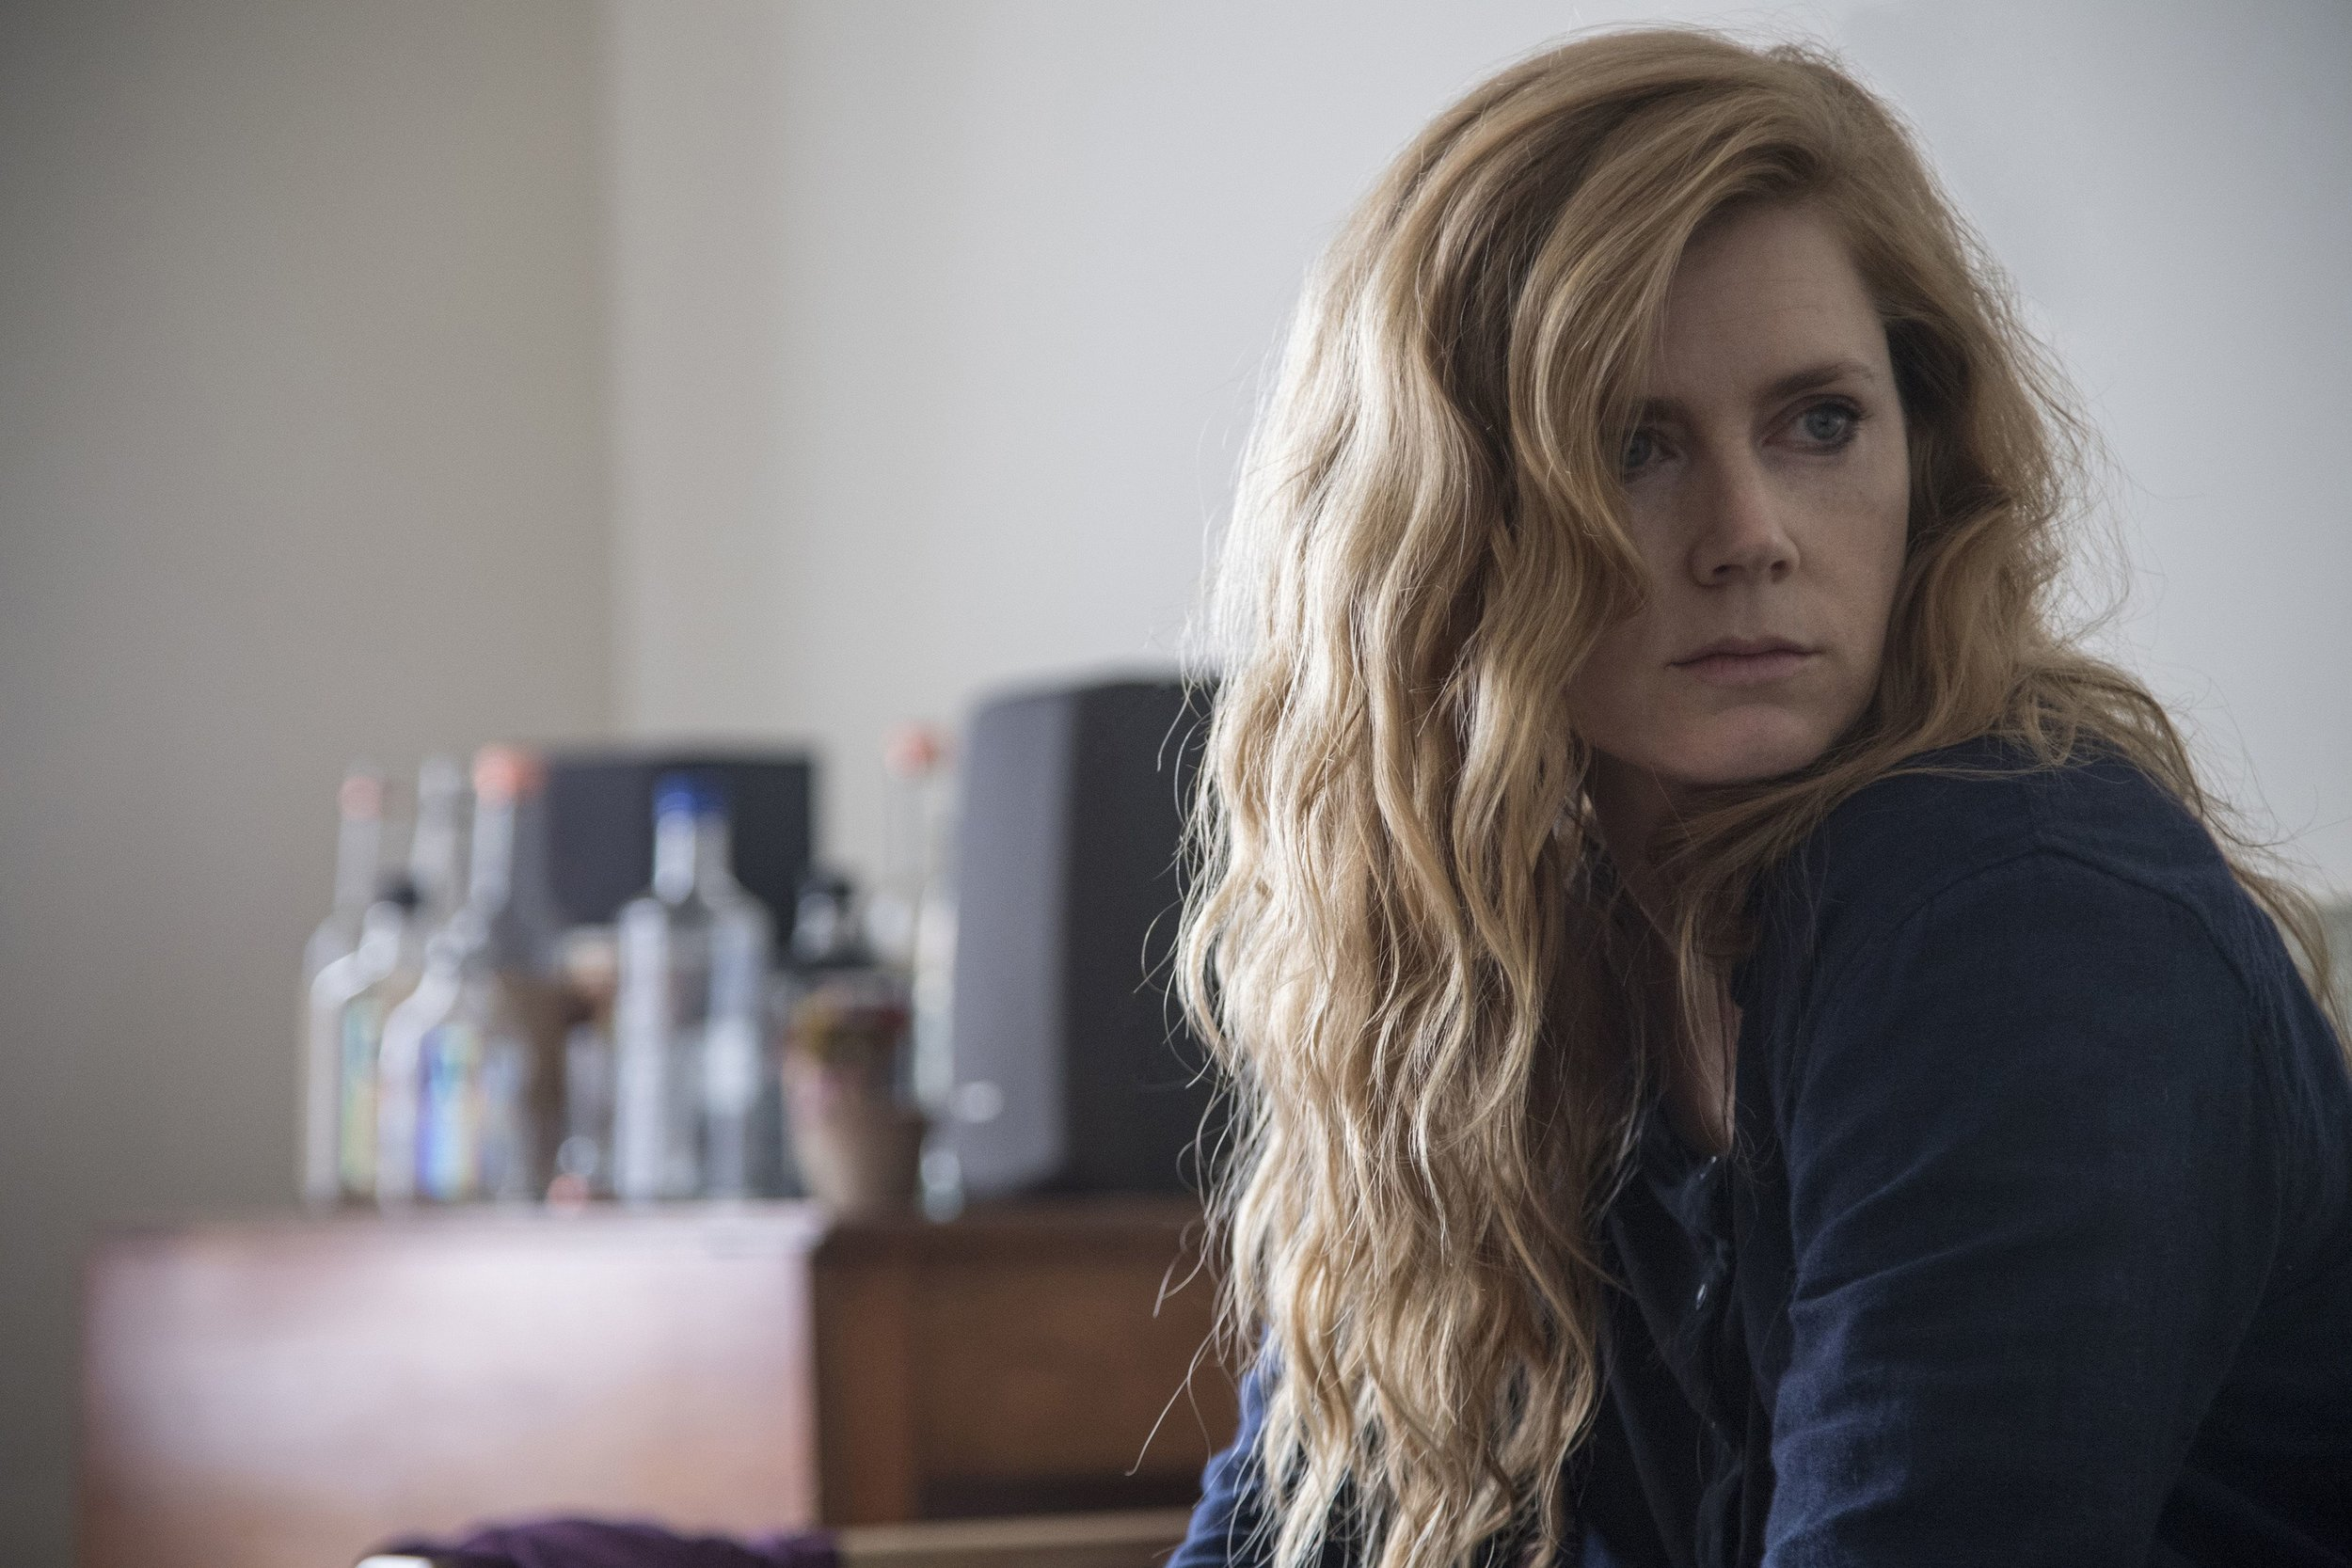 Amy Adams shines once more in a showcase role